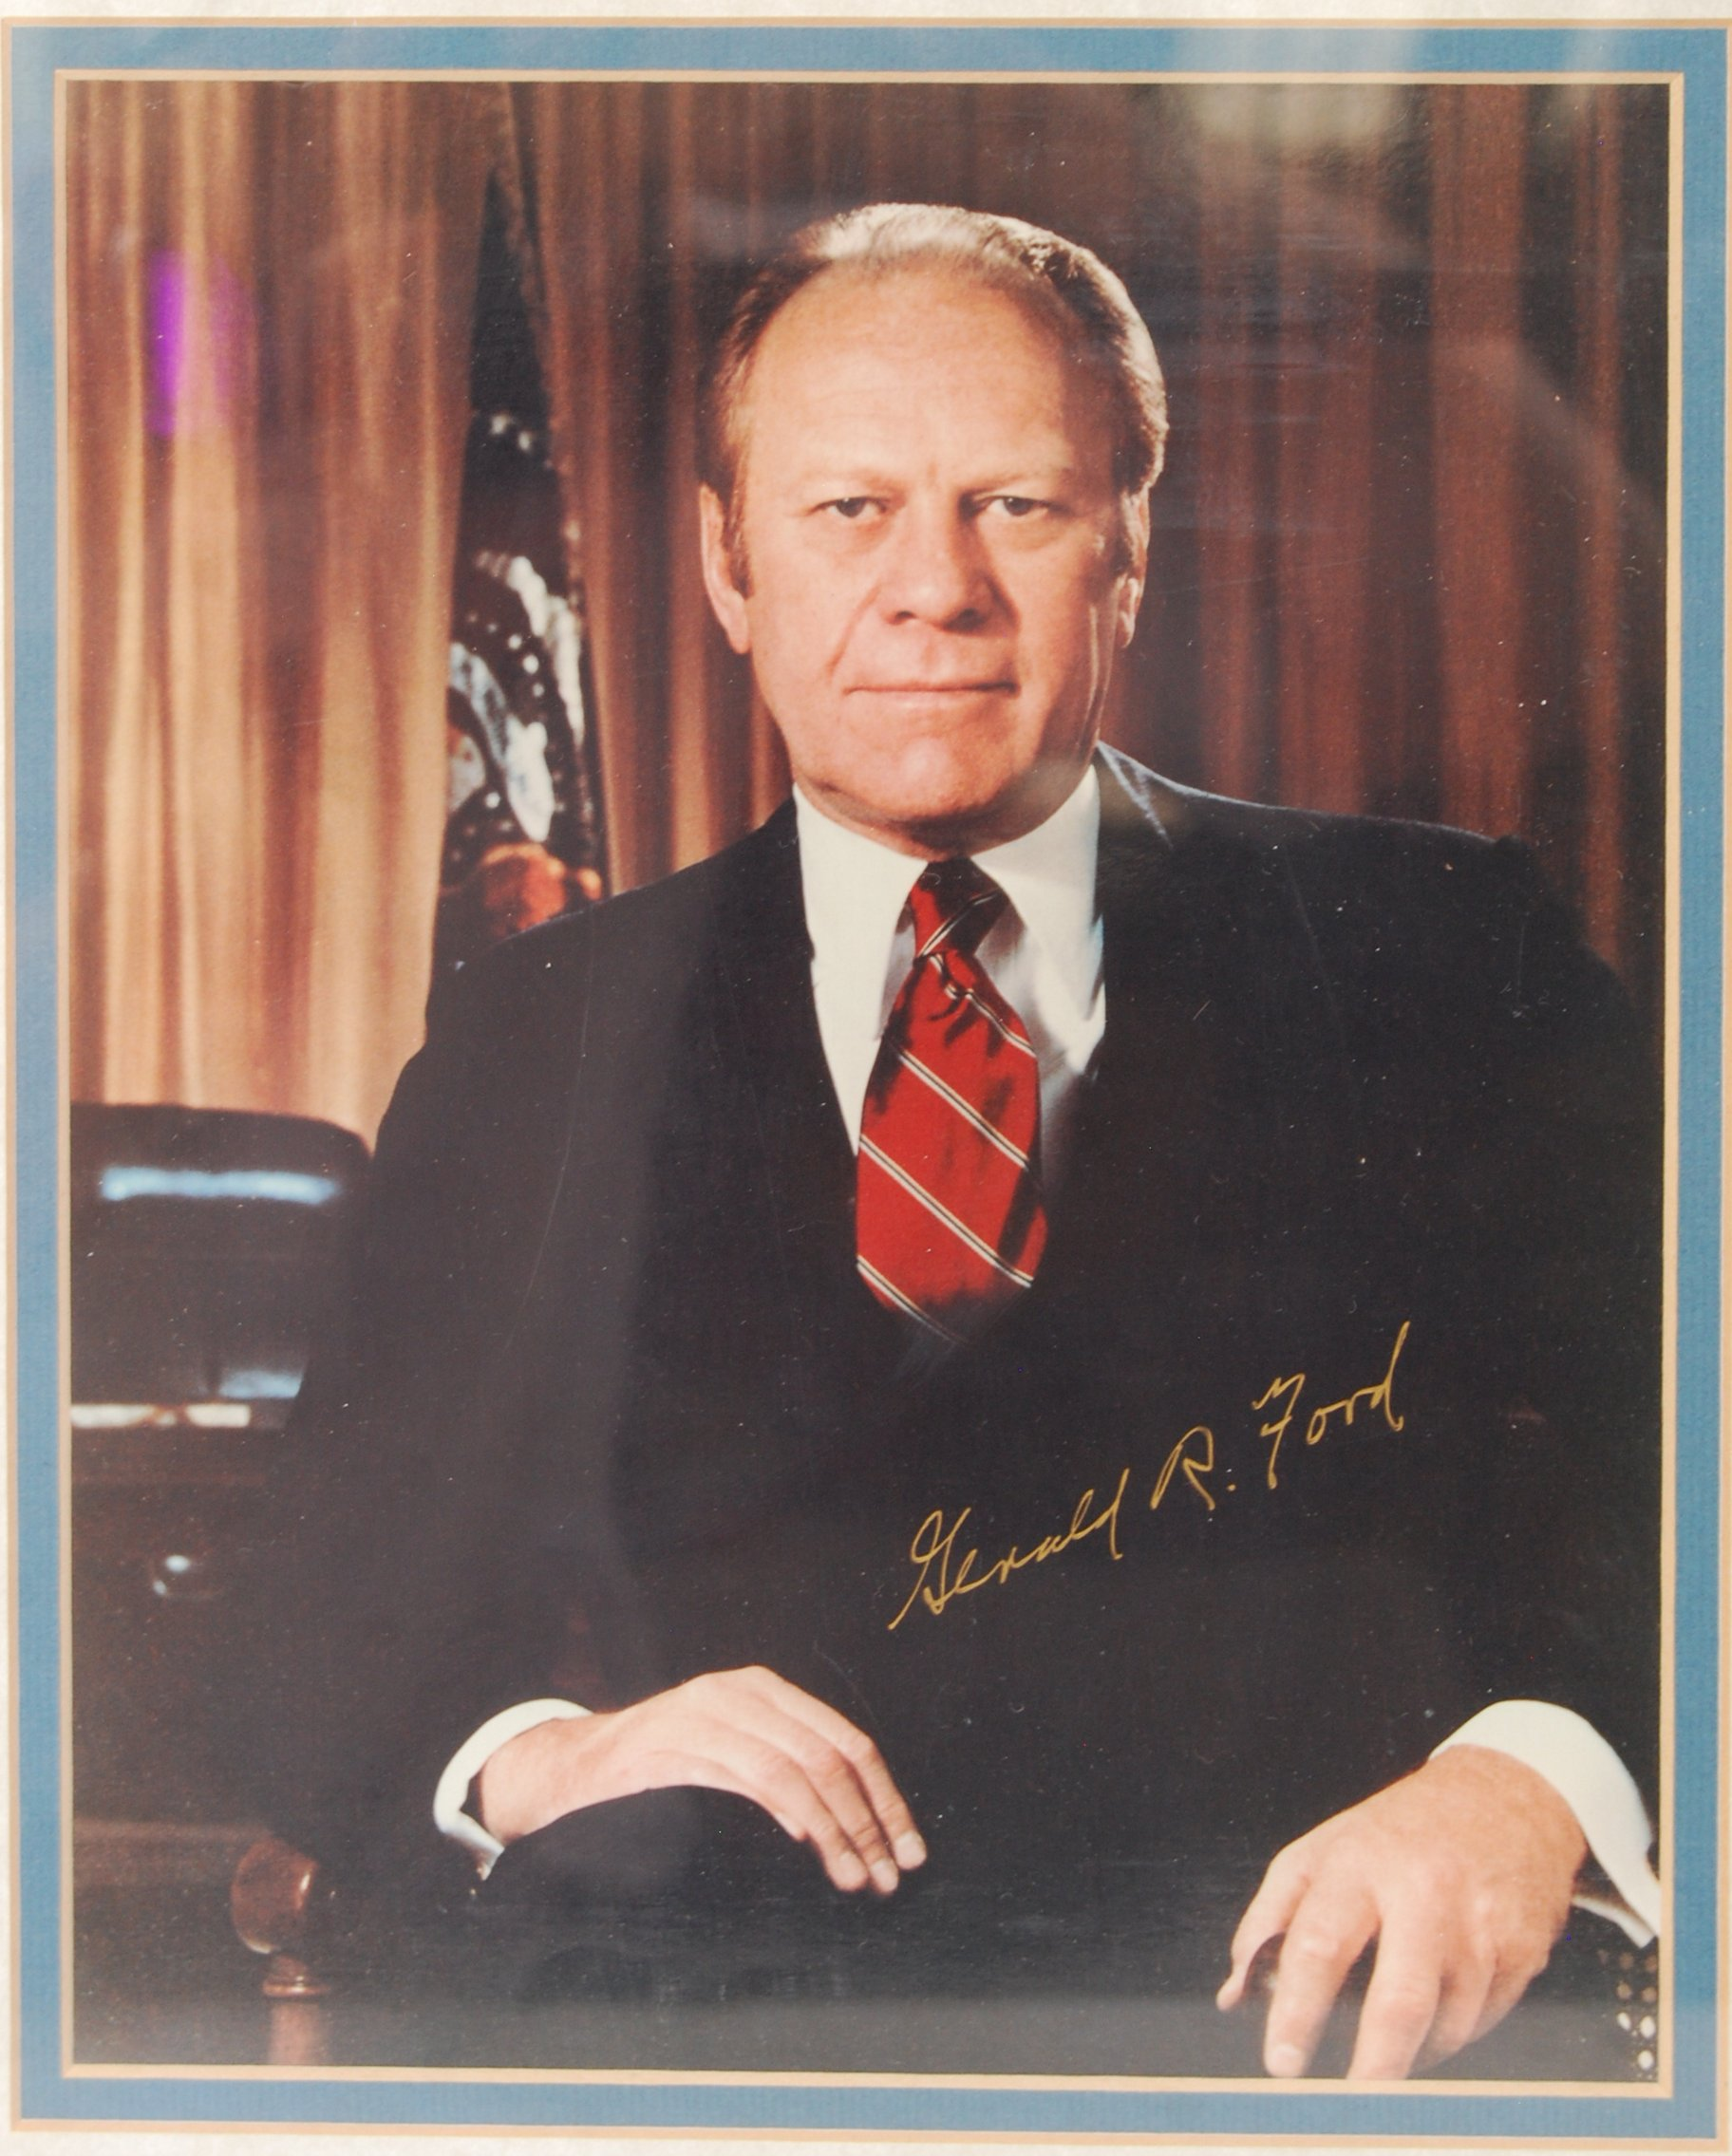 Lot 53 - GERALD R. FORD PRESIDENT OF THE U.S. 1974 SIGNED PUBLICITY PHOTO